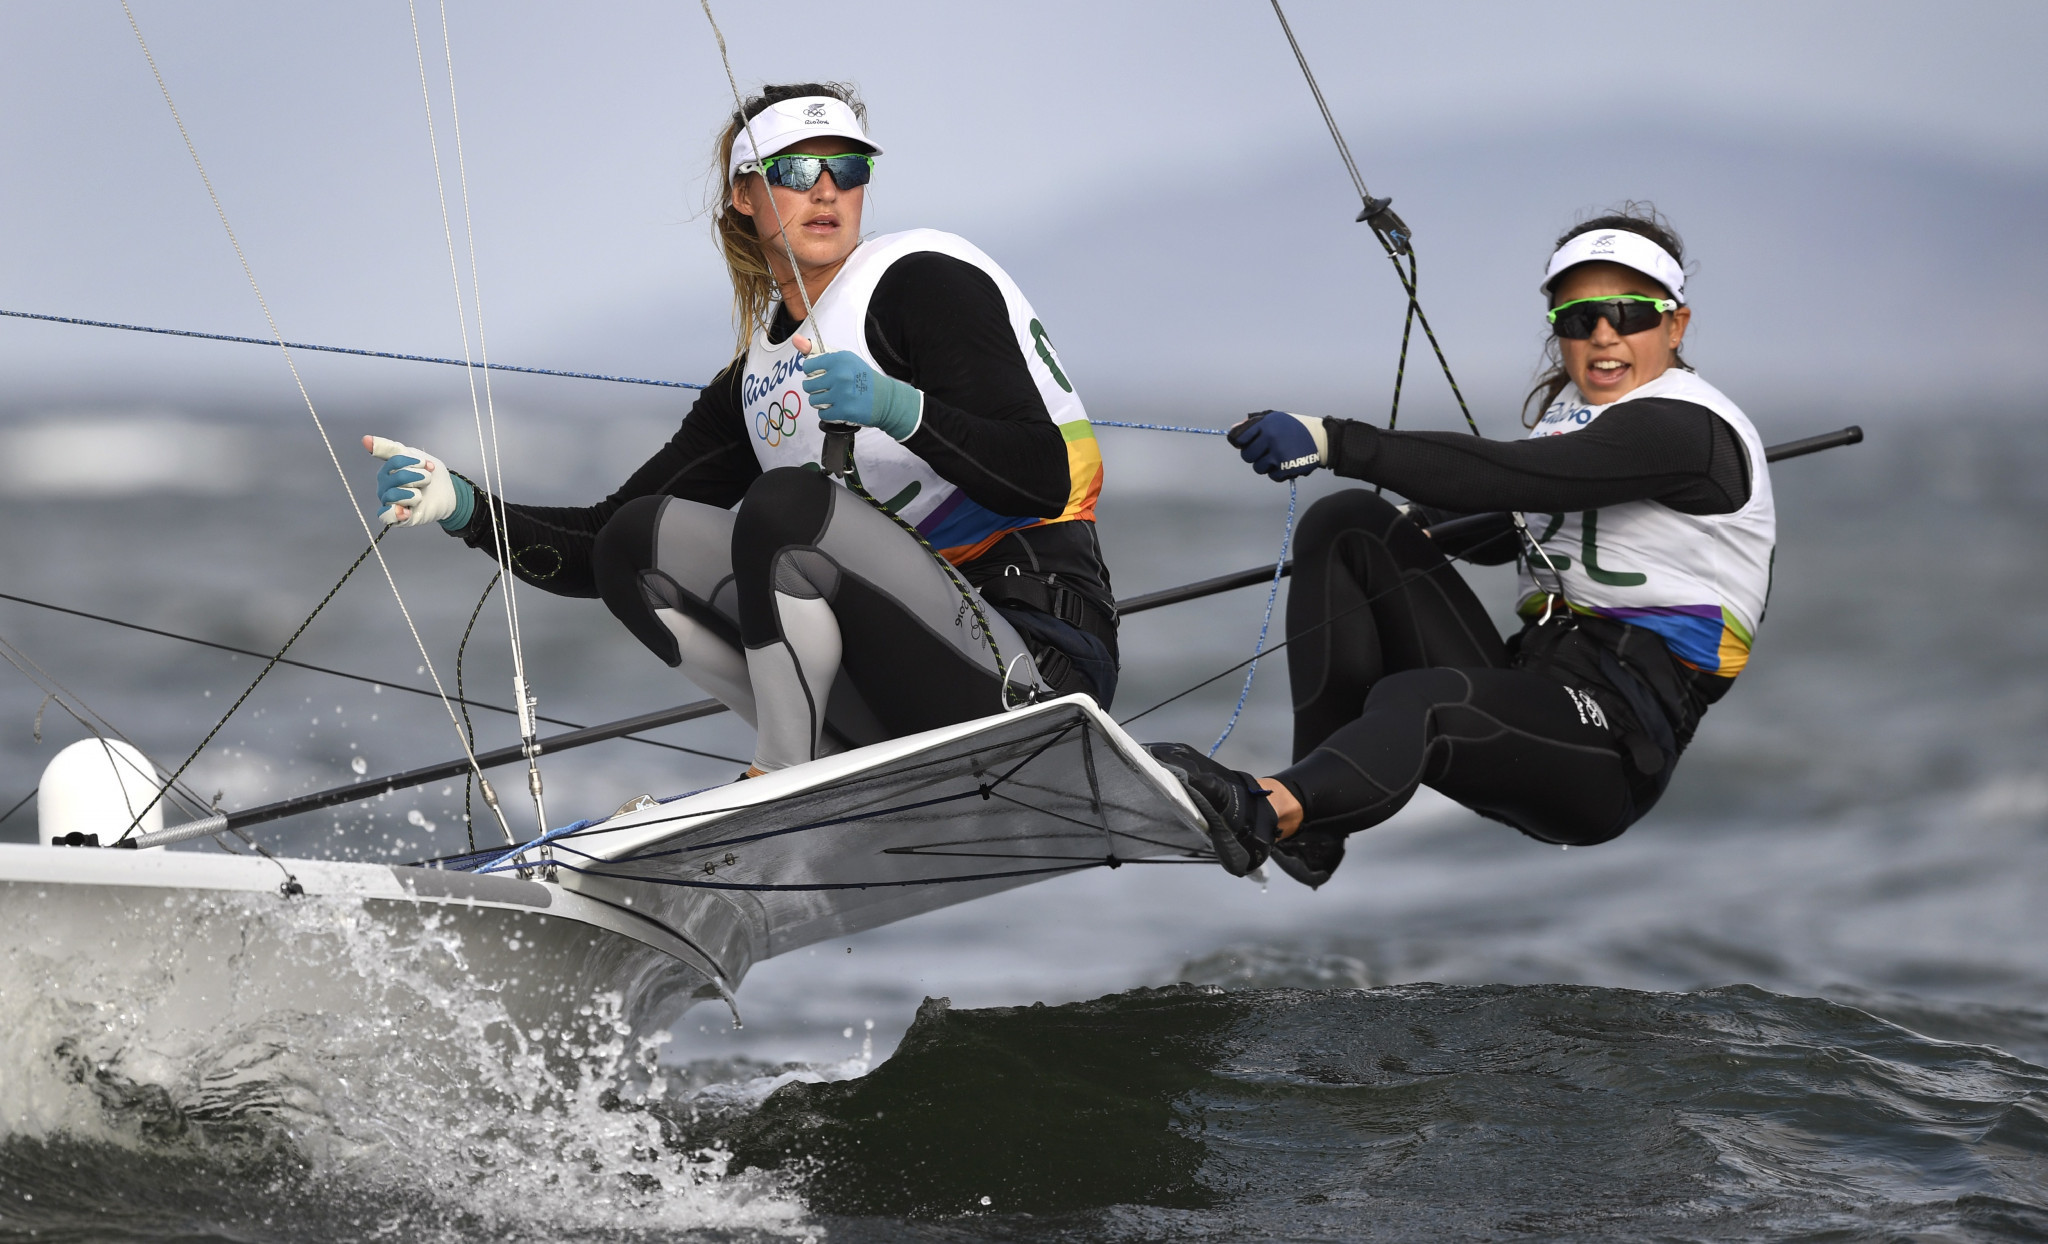 New Zealand's Alexandra Maloney and Molly Meech lead the 49erFX event at the Sailing World Cup in Miami ©Getty Images